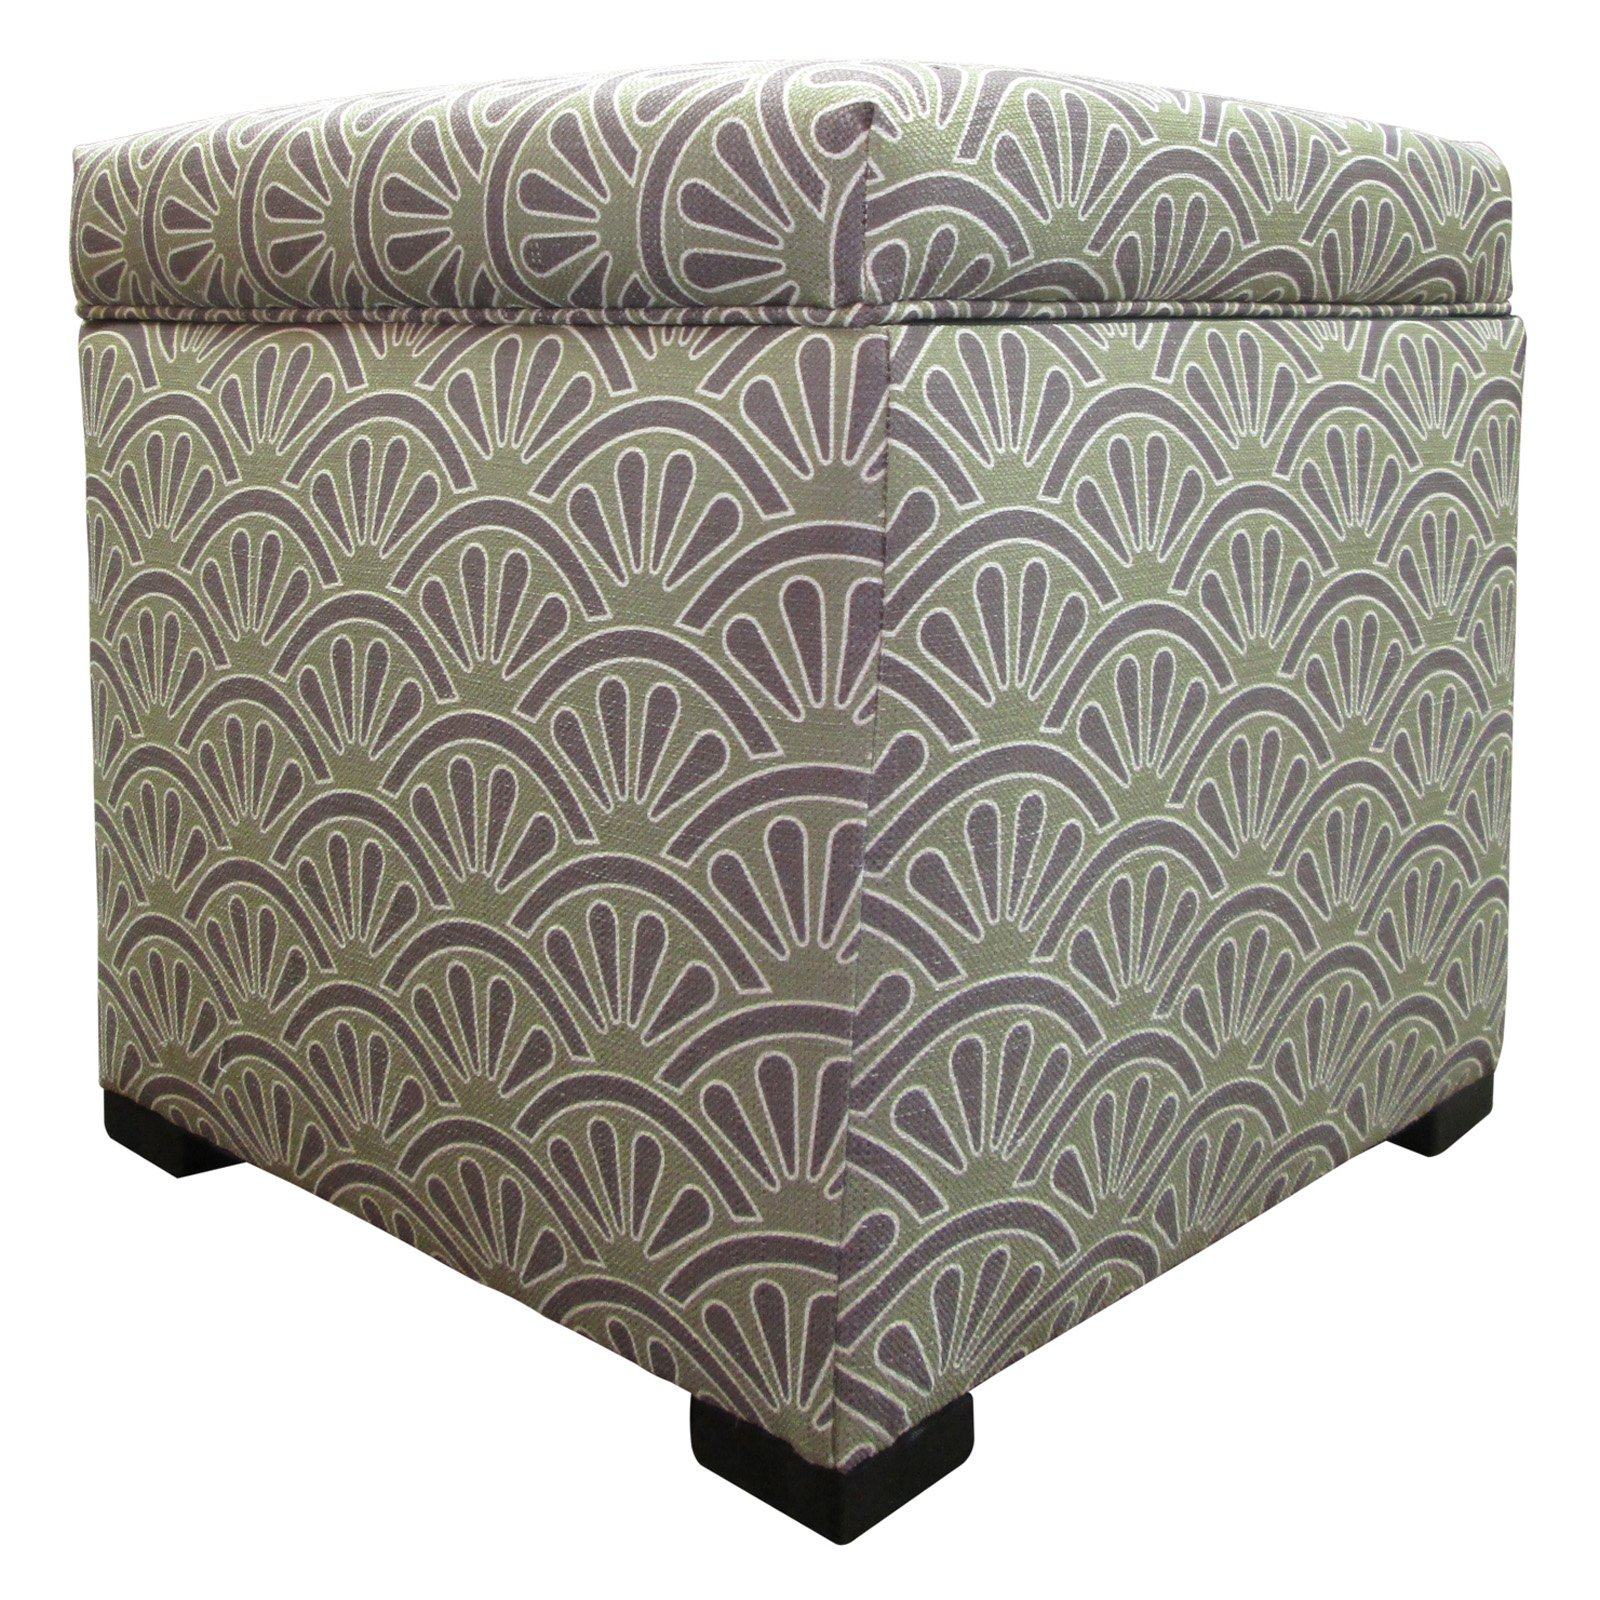 Sole Designs Tami Collection Bonjour Series Upholstered Bedroom Storage Ottoman